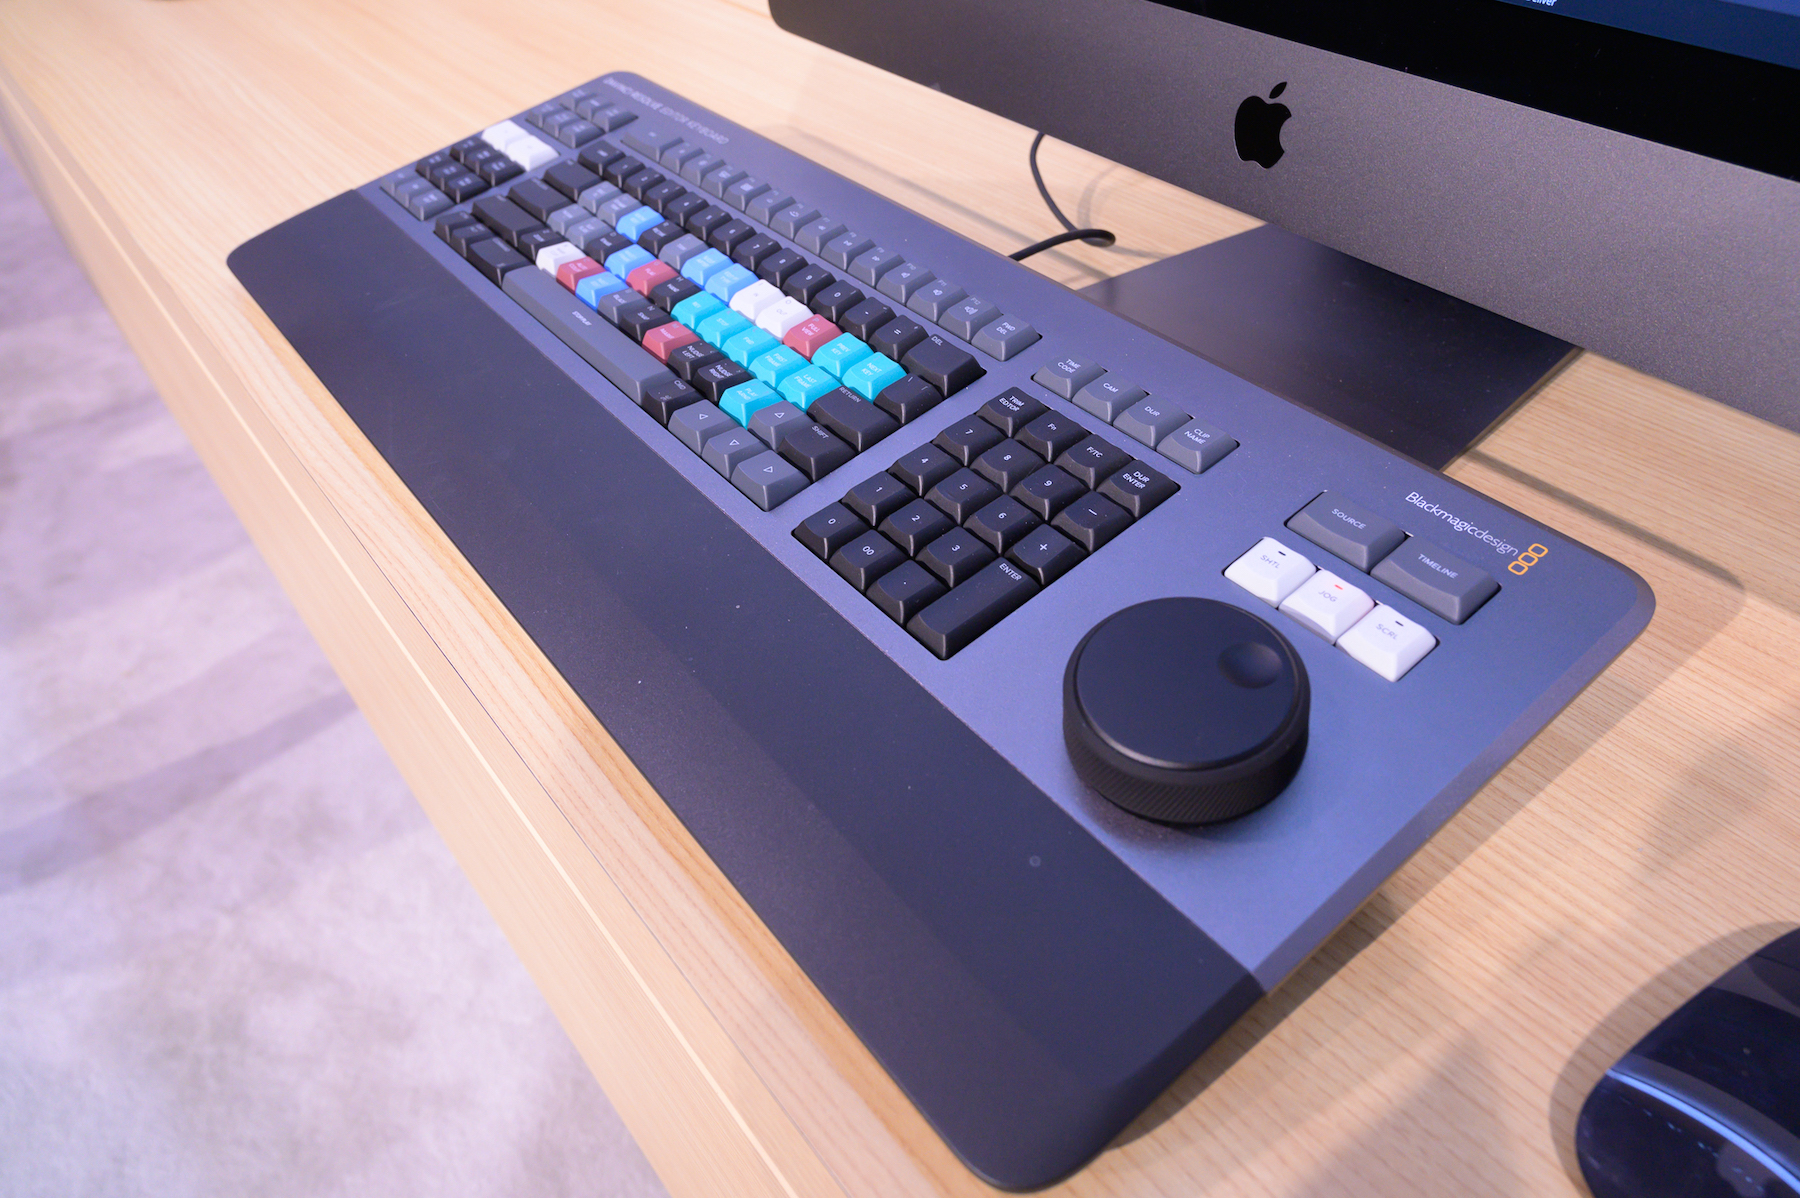 Burning questions about the DaVinci Resolve Editor Keyboard 13